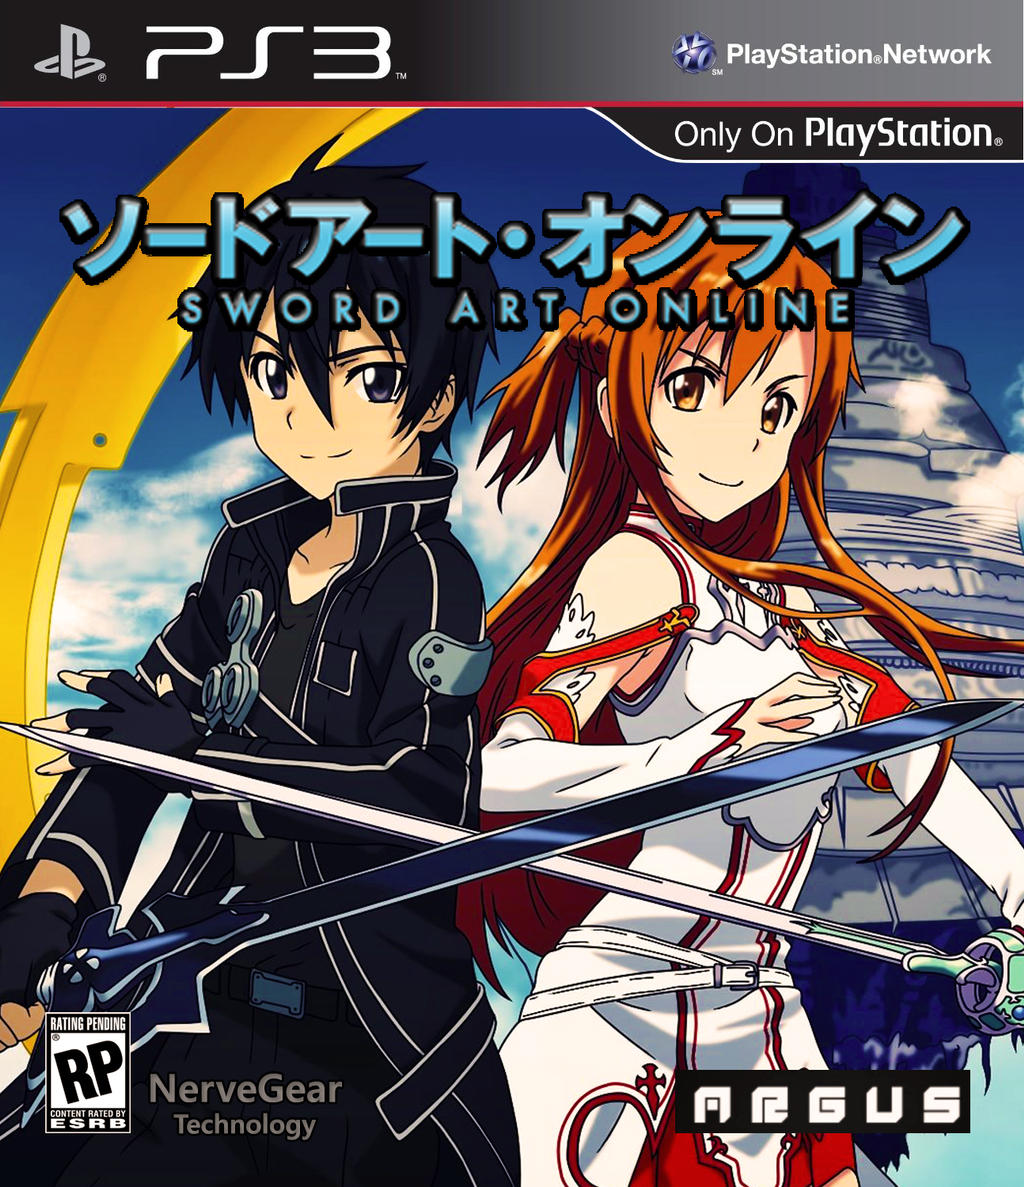 Sword Art Online - PS3 Game Box Cover by GUSRG on DeviantArt